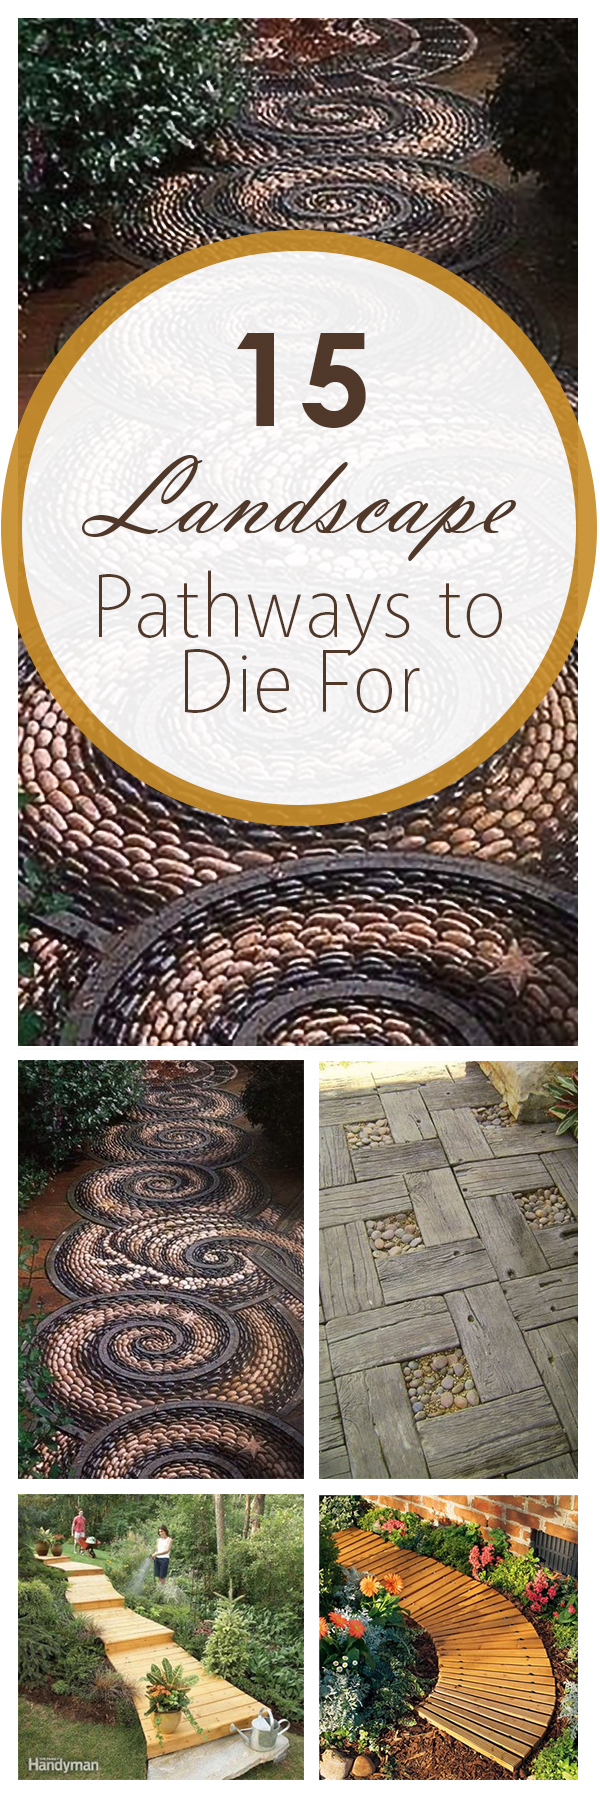 15 Landscape Pathways to Die For (1)